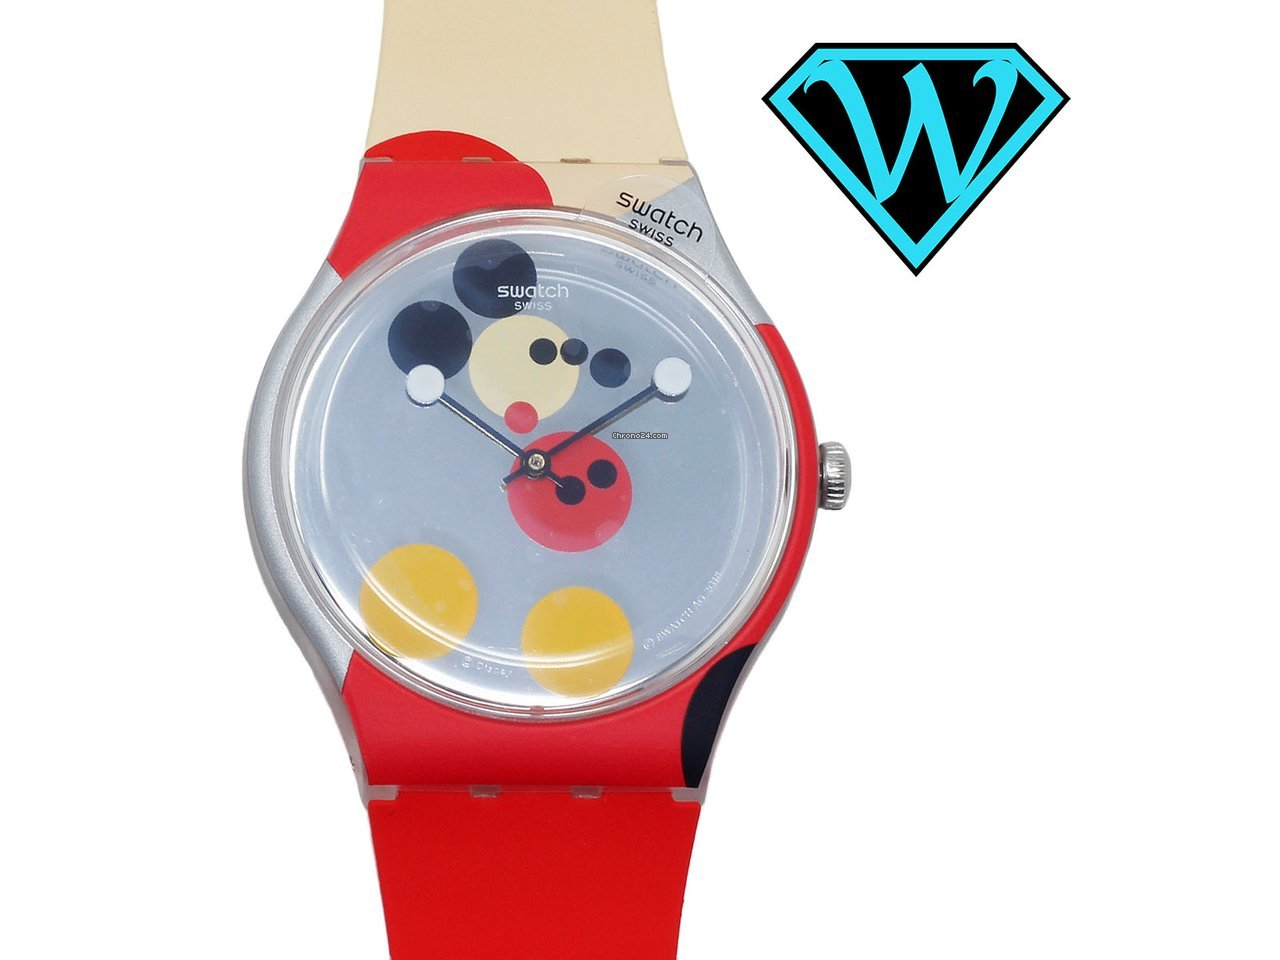 Swatch Watches All Prices For Swatch Watches On Chrono24